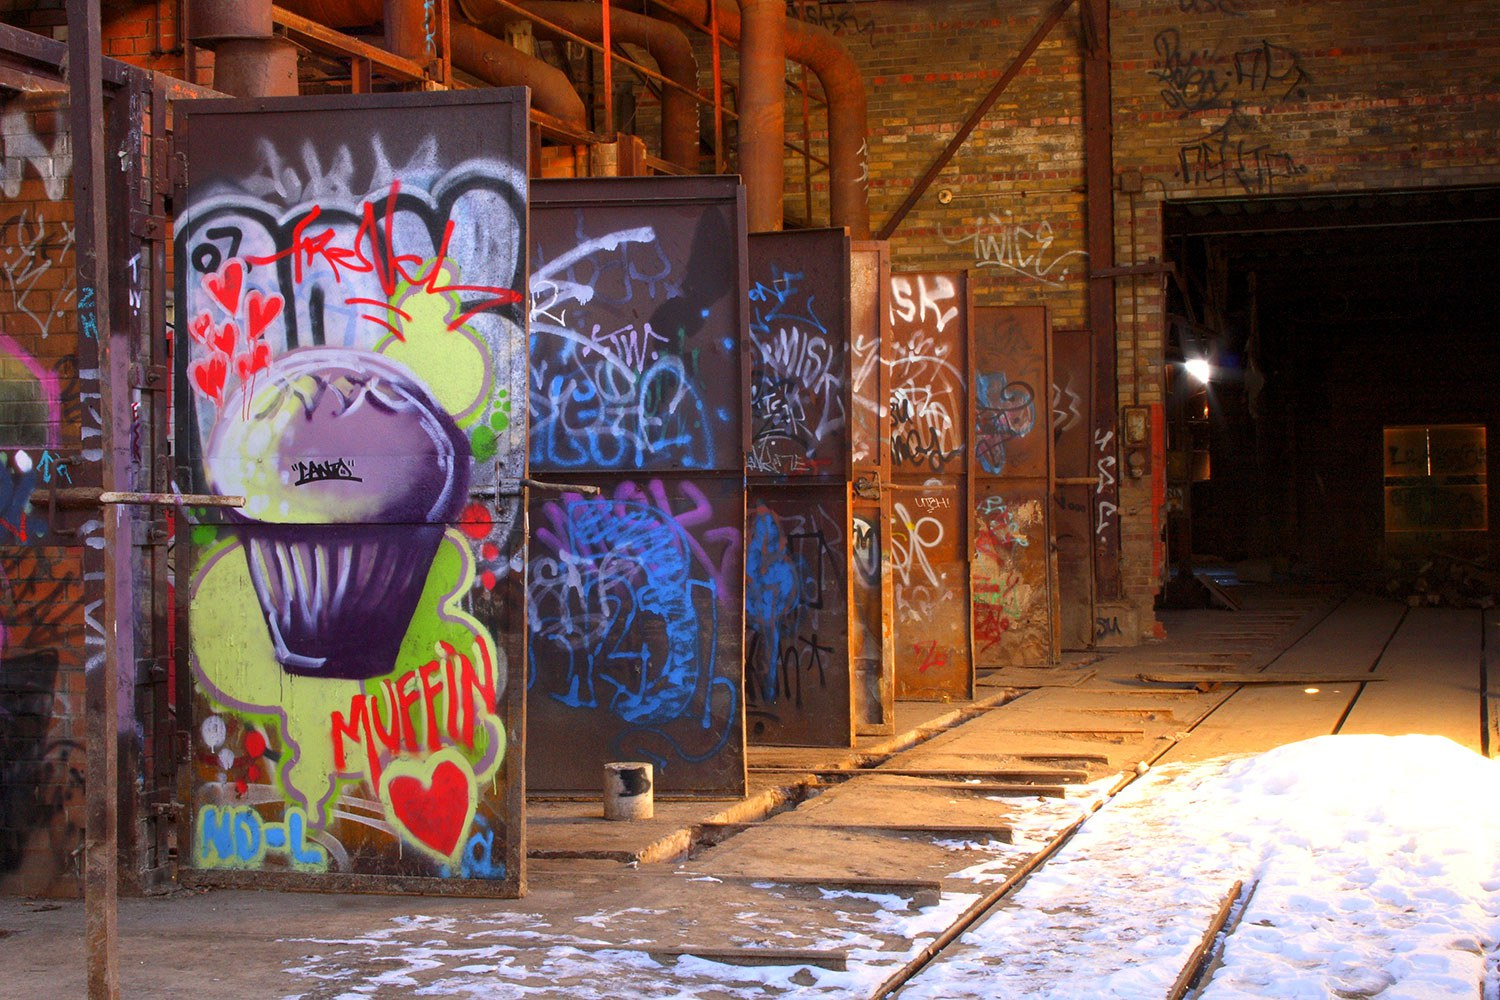 From wall to wall and kiln to kiln, thousands of individual types, styles and techniques of artistic graffiti can be found at Evergreen Brick Works, dating back to the early 1980s (Photo: Michelle Scrivener)